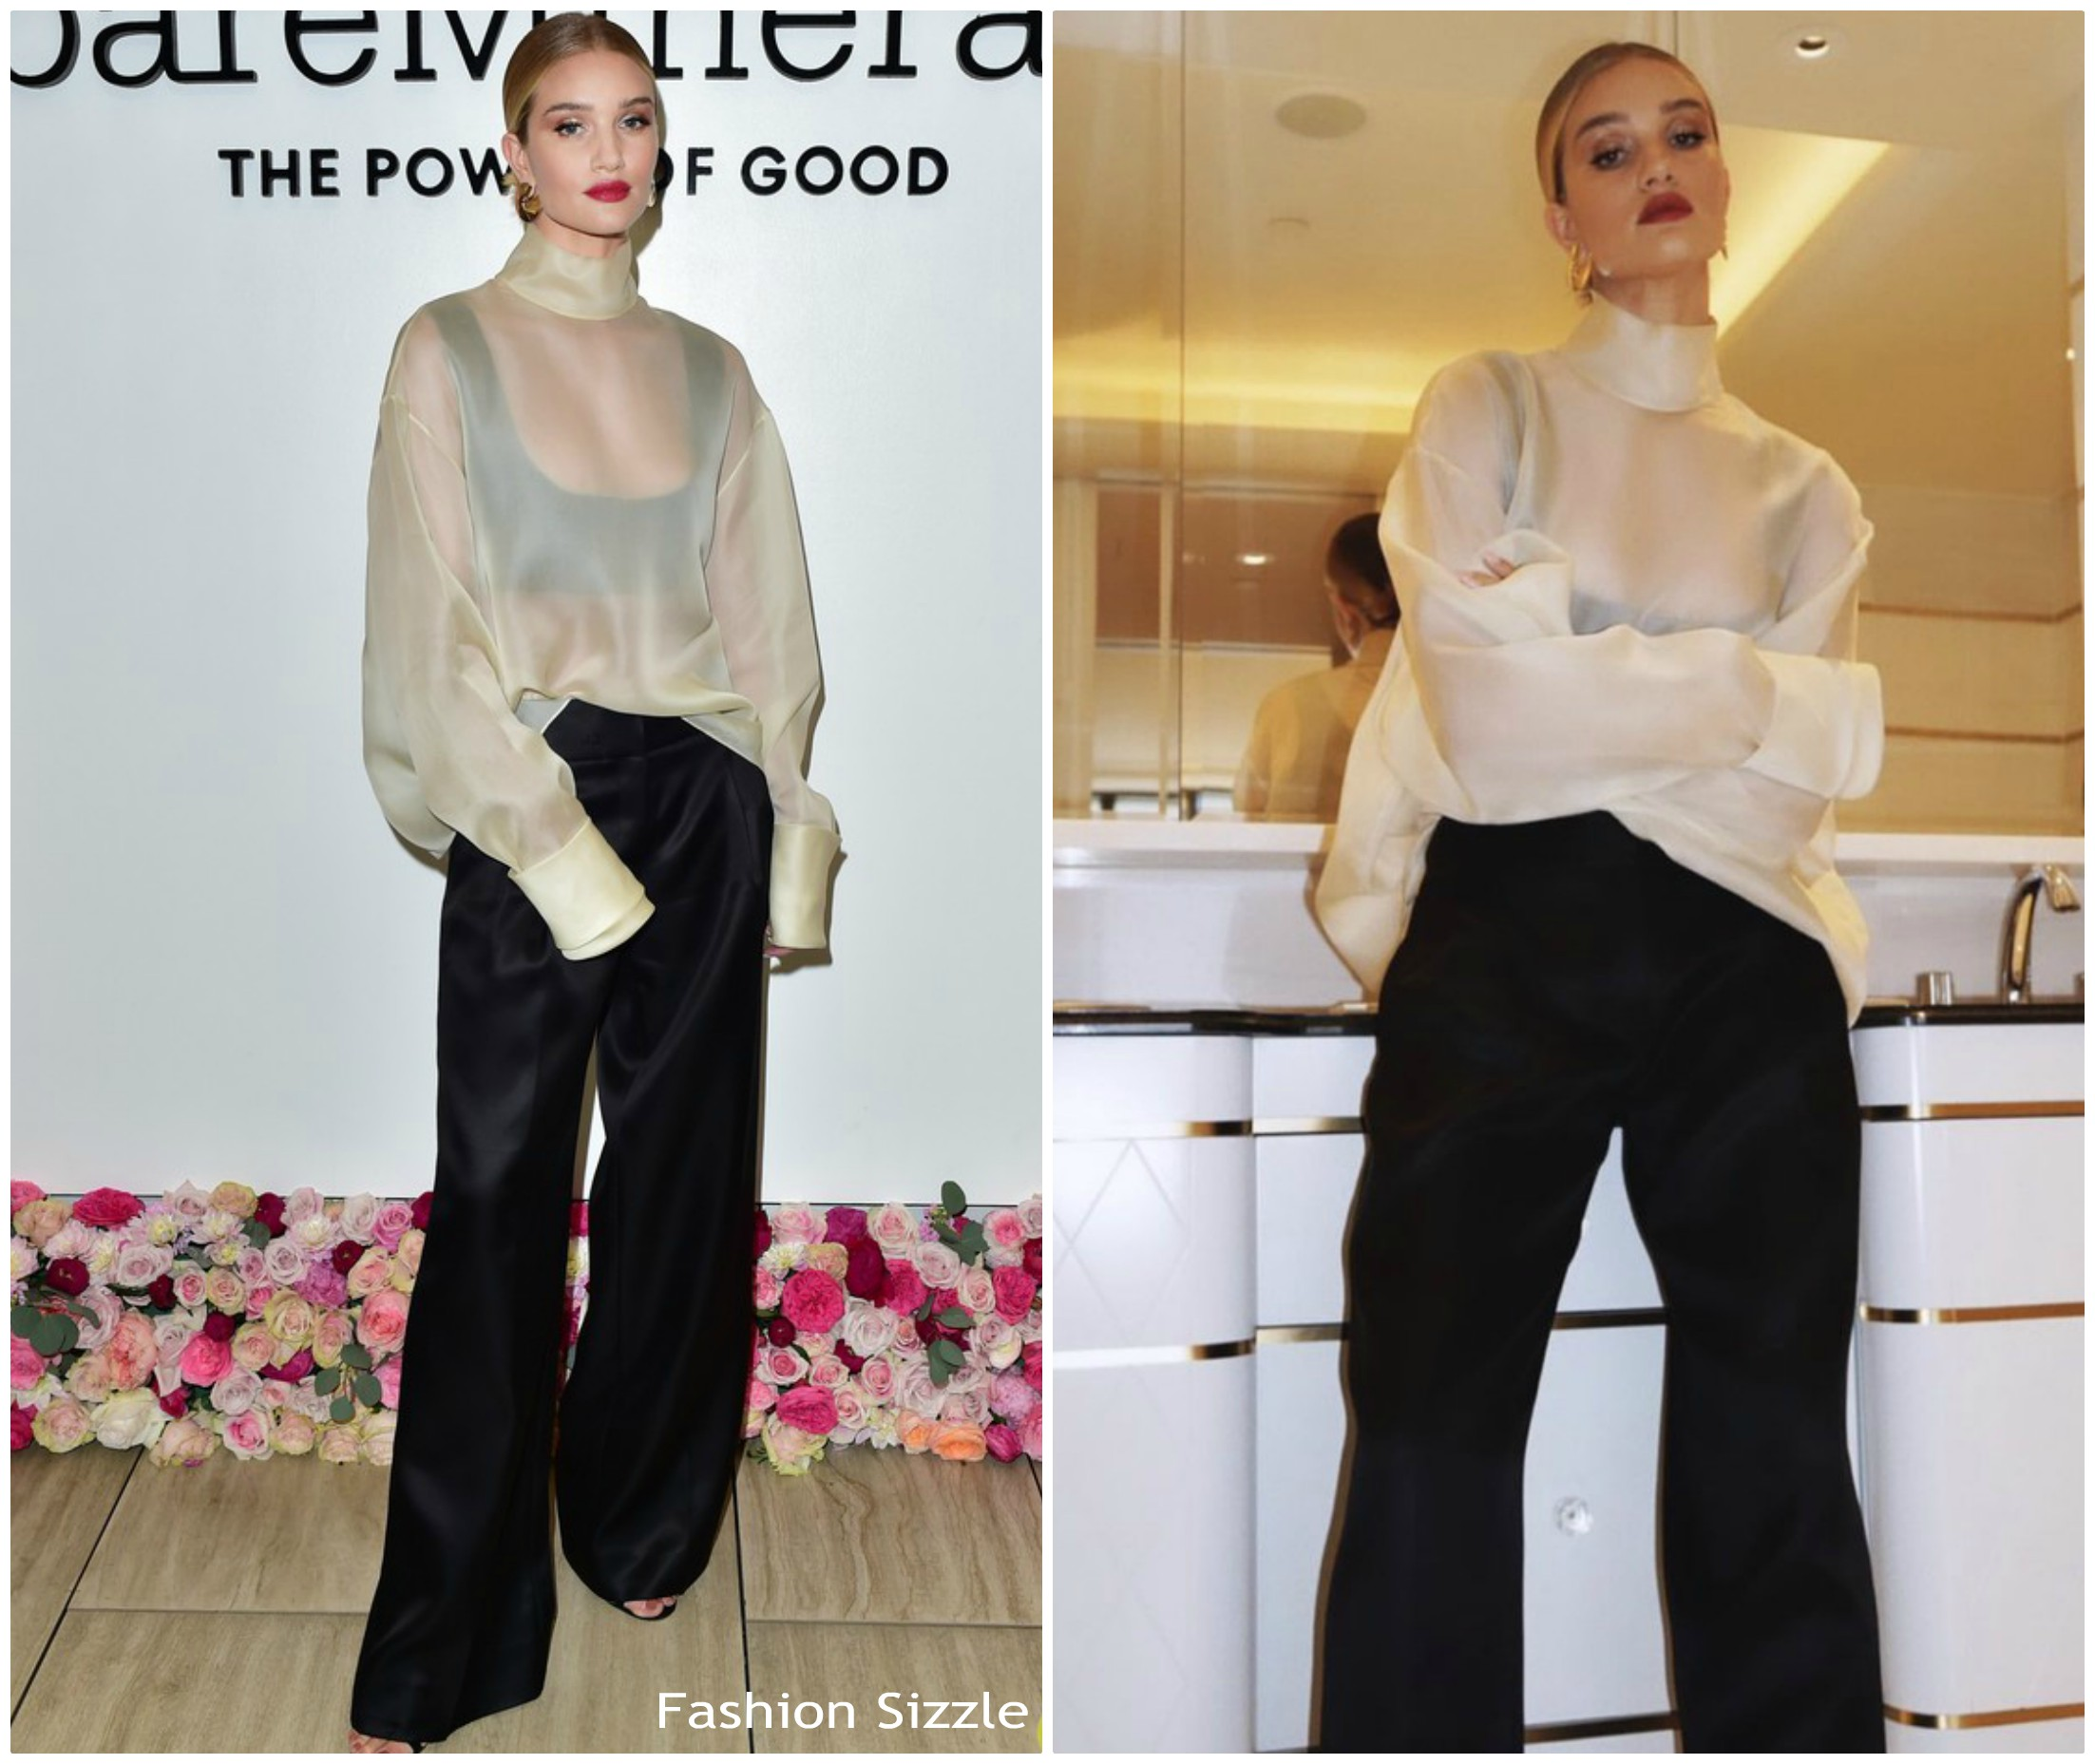 rosie-huntington-whiteley-in-the-row-bareminerals-events